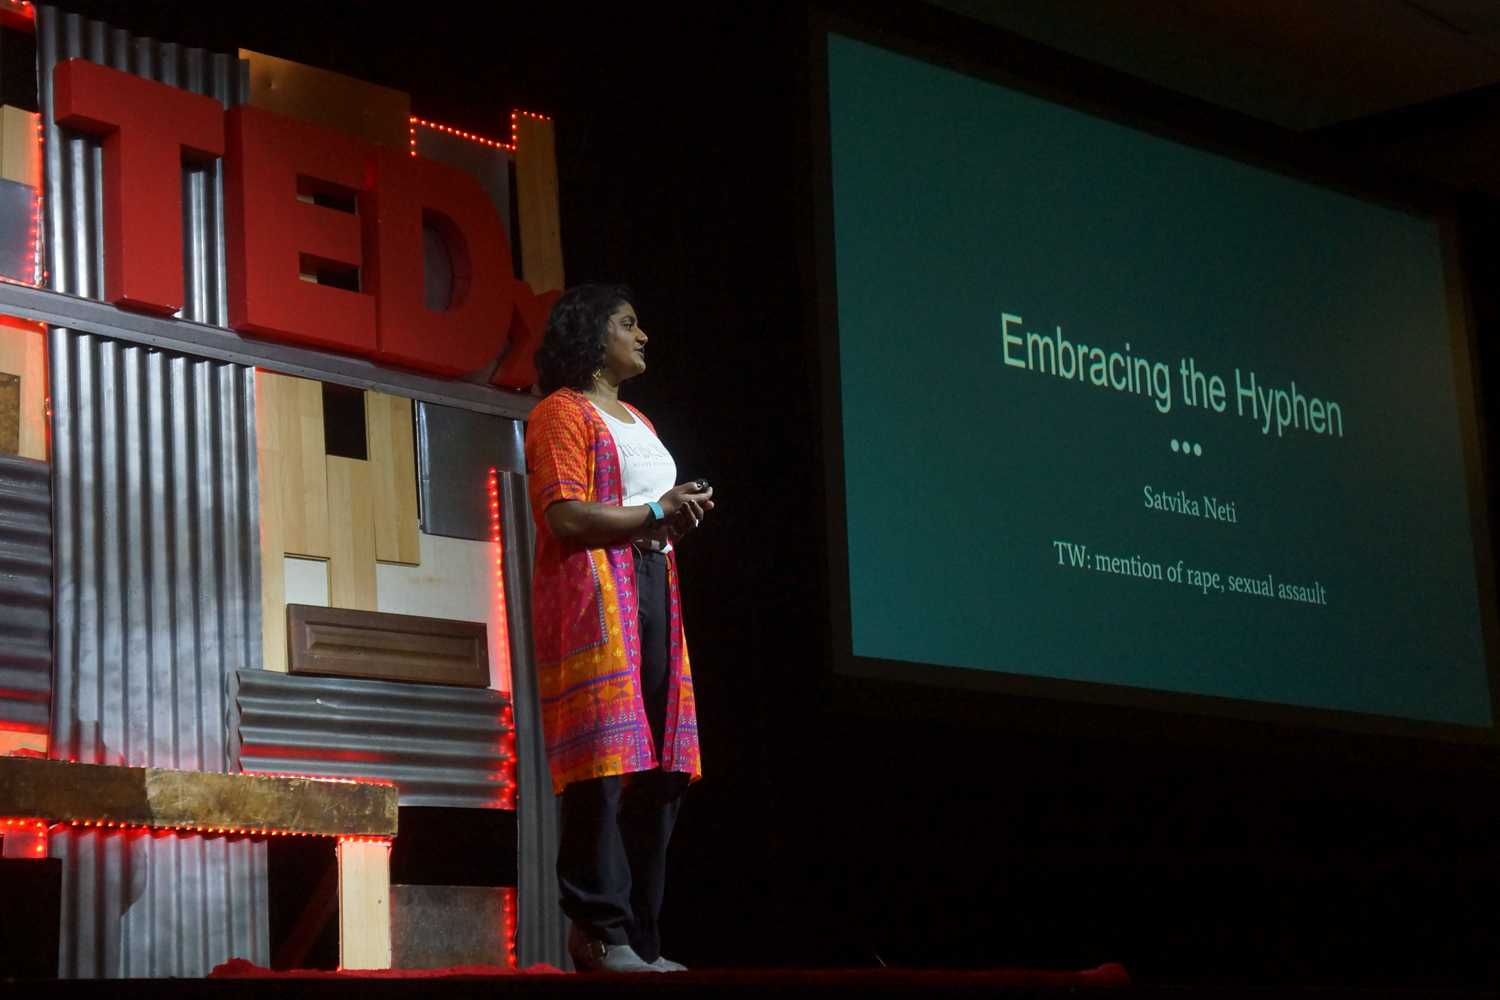 Satvika Neti discusses identity at Saturday's TEDx University of Pittsburgh event. (Photo courtesy of Ian Callahan)